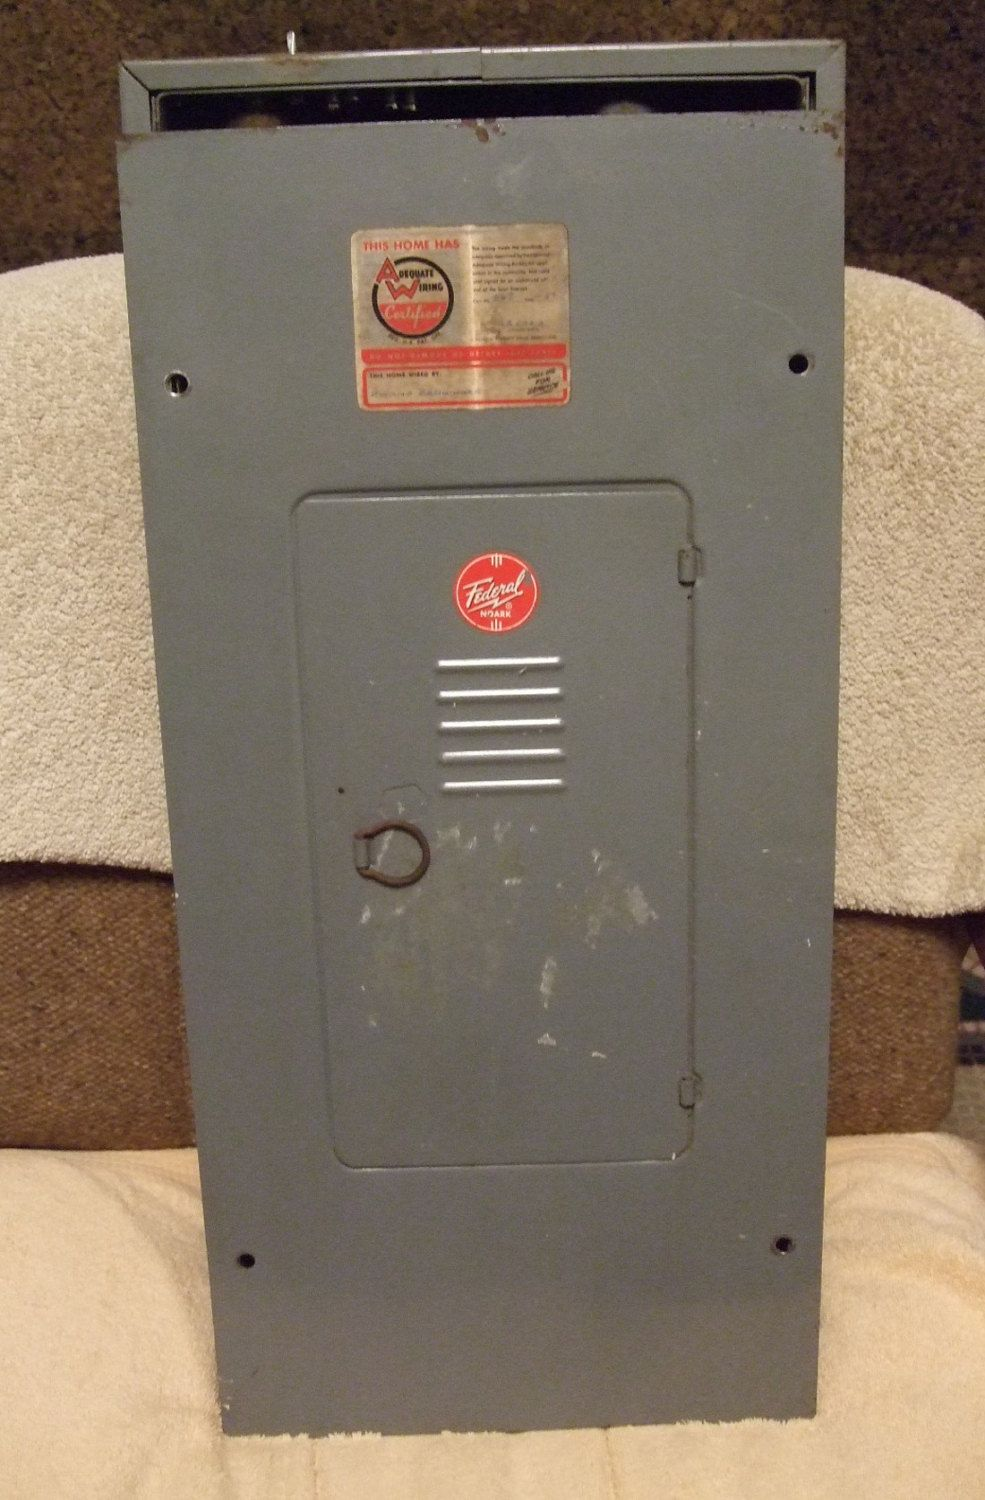 hight resolution of federal noark 200 amp electrical breaker box panel 1957 residential wiring 40 spaces for stab lok breakers restoration replacemnt vintage by